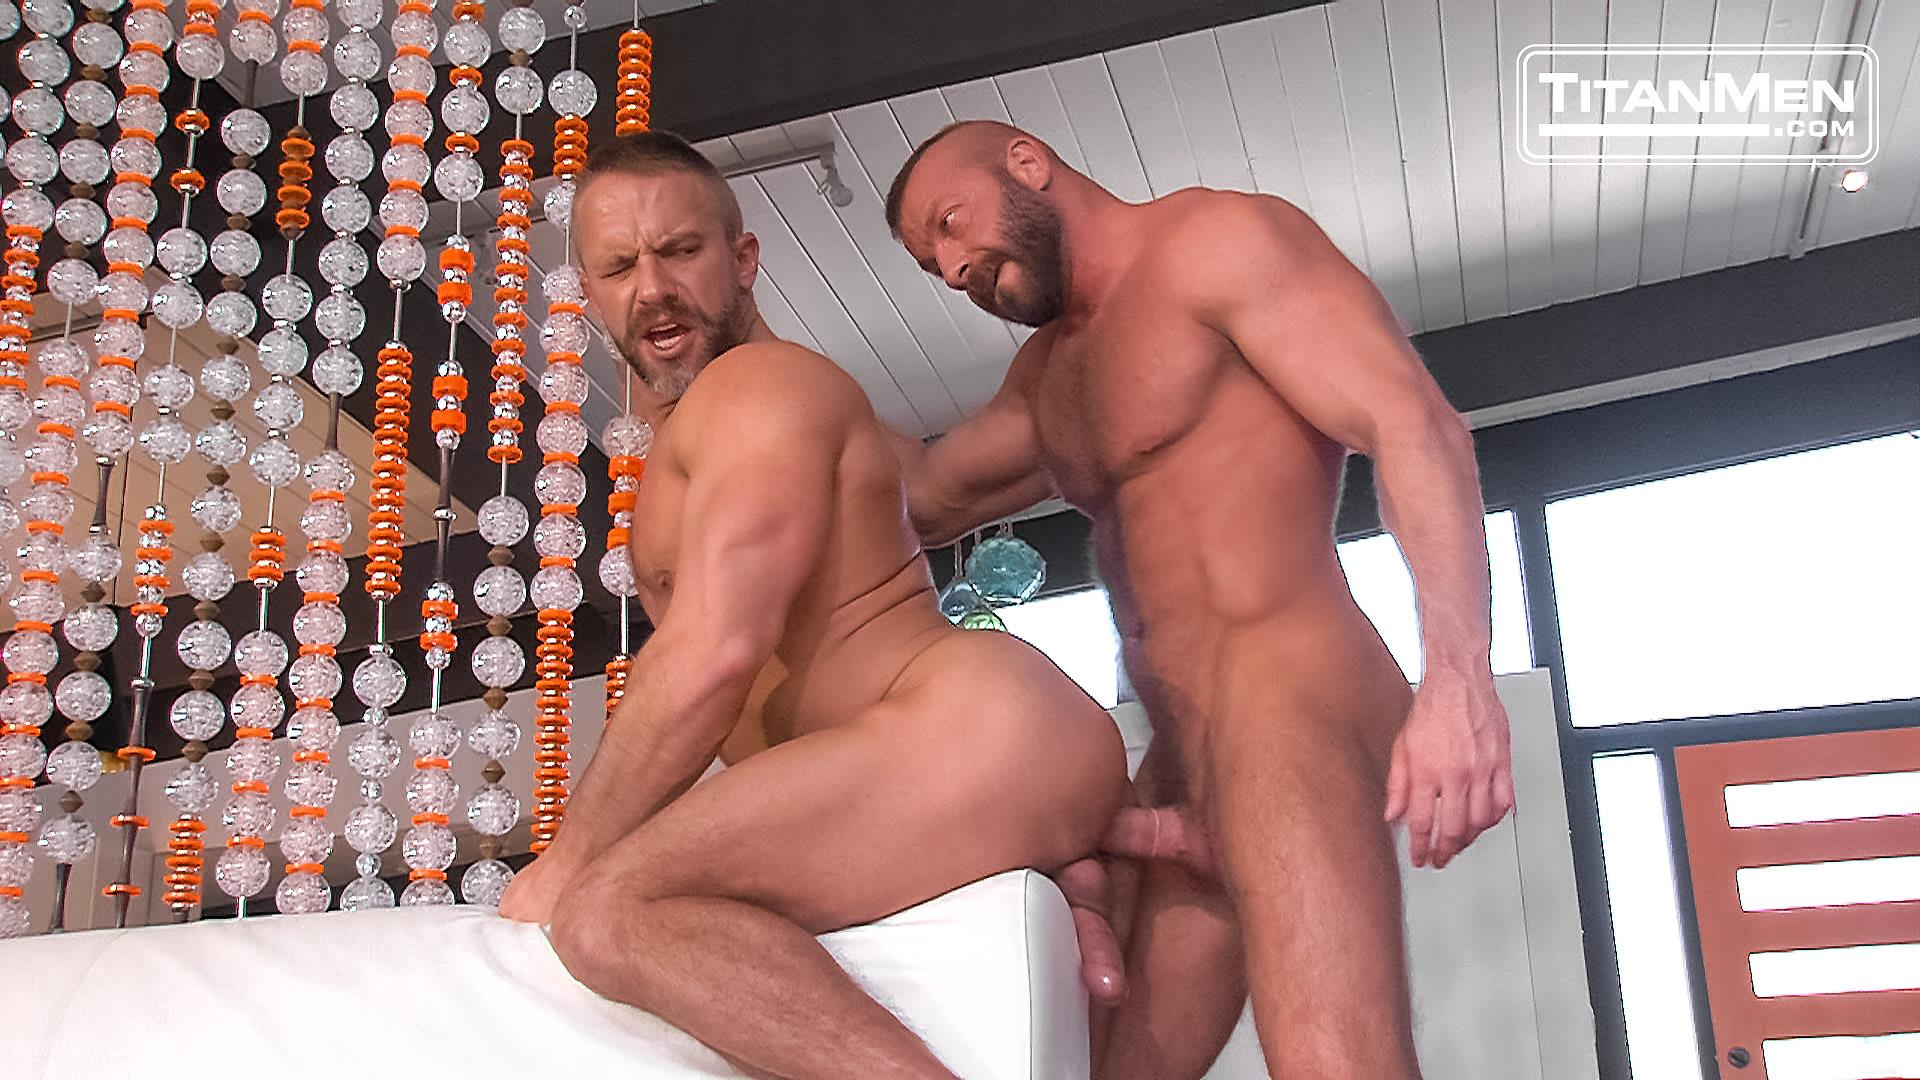 Hardcore Gay Daddy Awesome dirk carber gets fucked hardanother muscle daddy with a thick